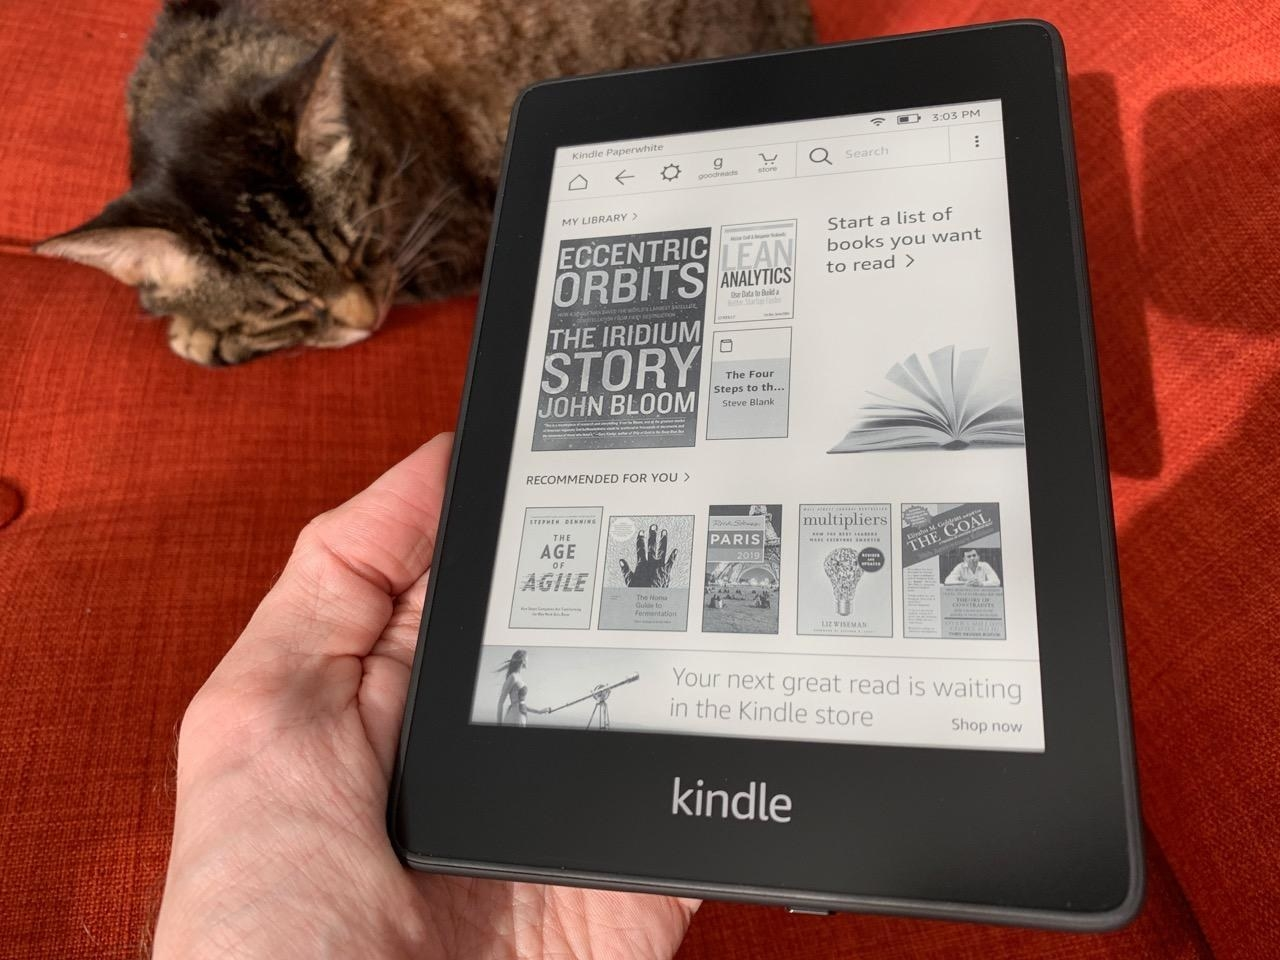 A reviewer holding the Kindle which is open to the black-and-white home screen